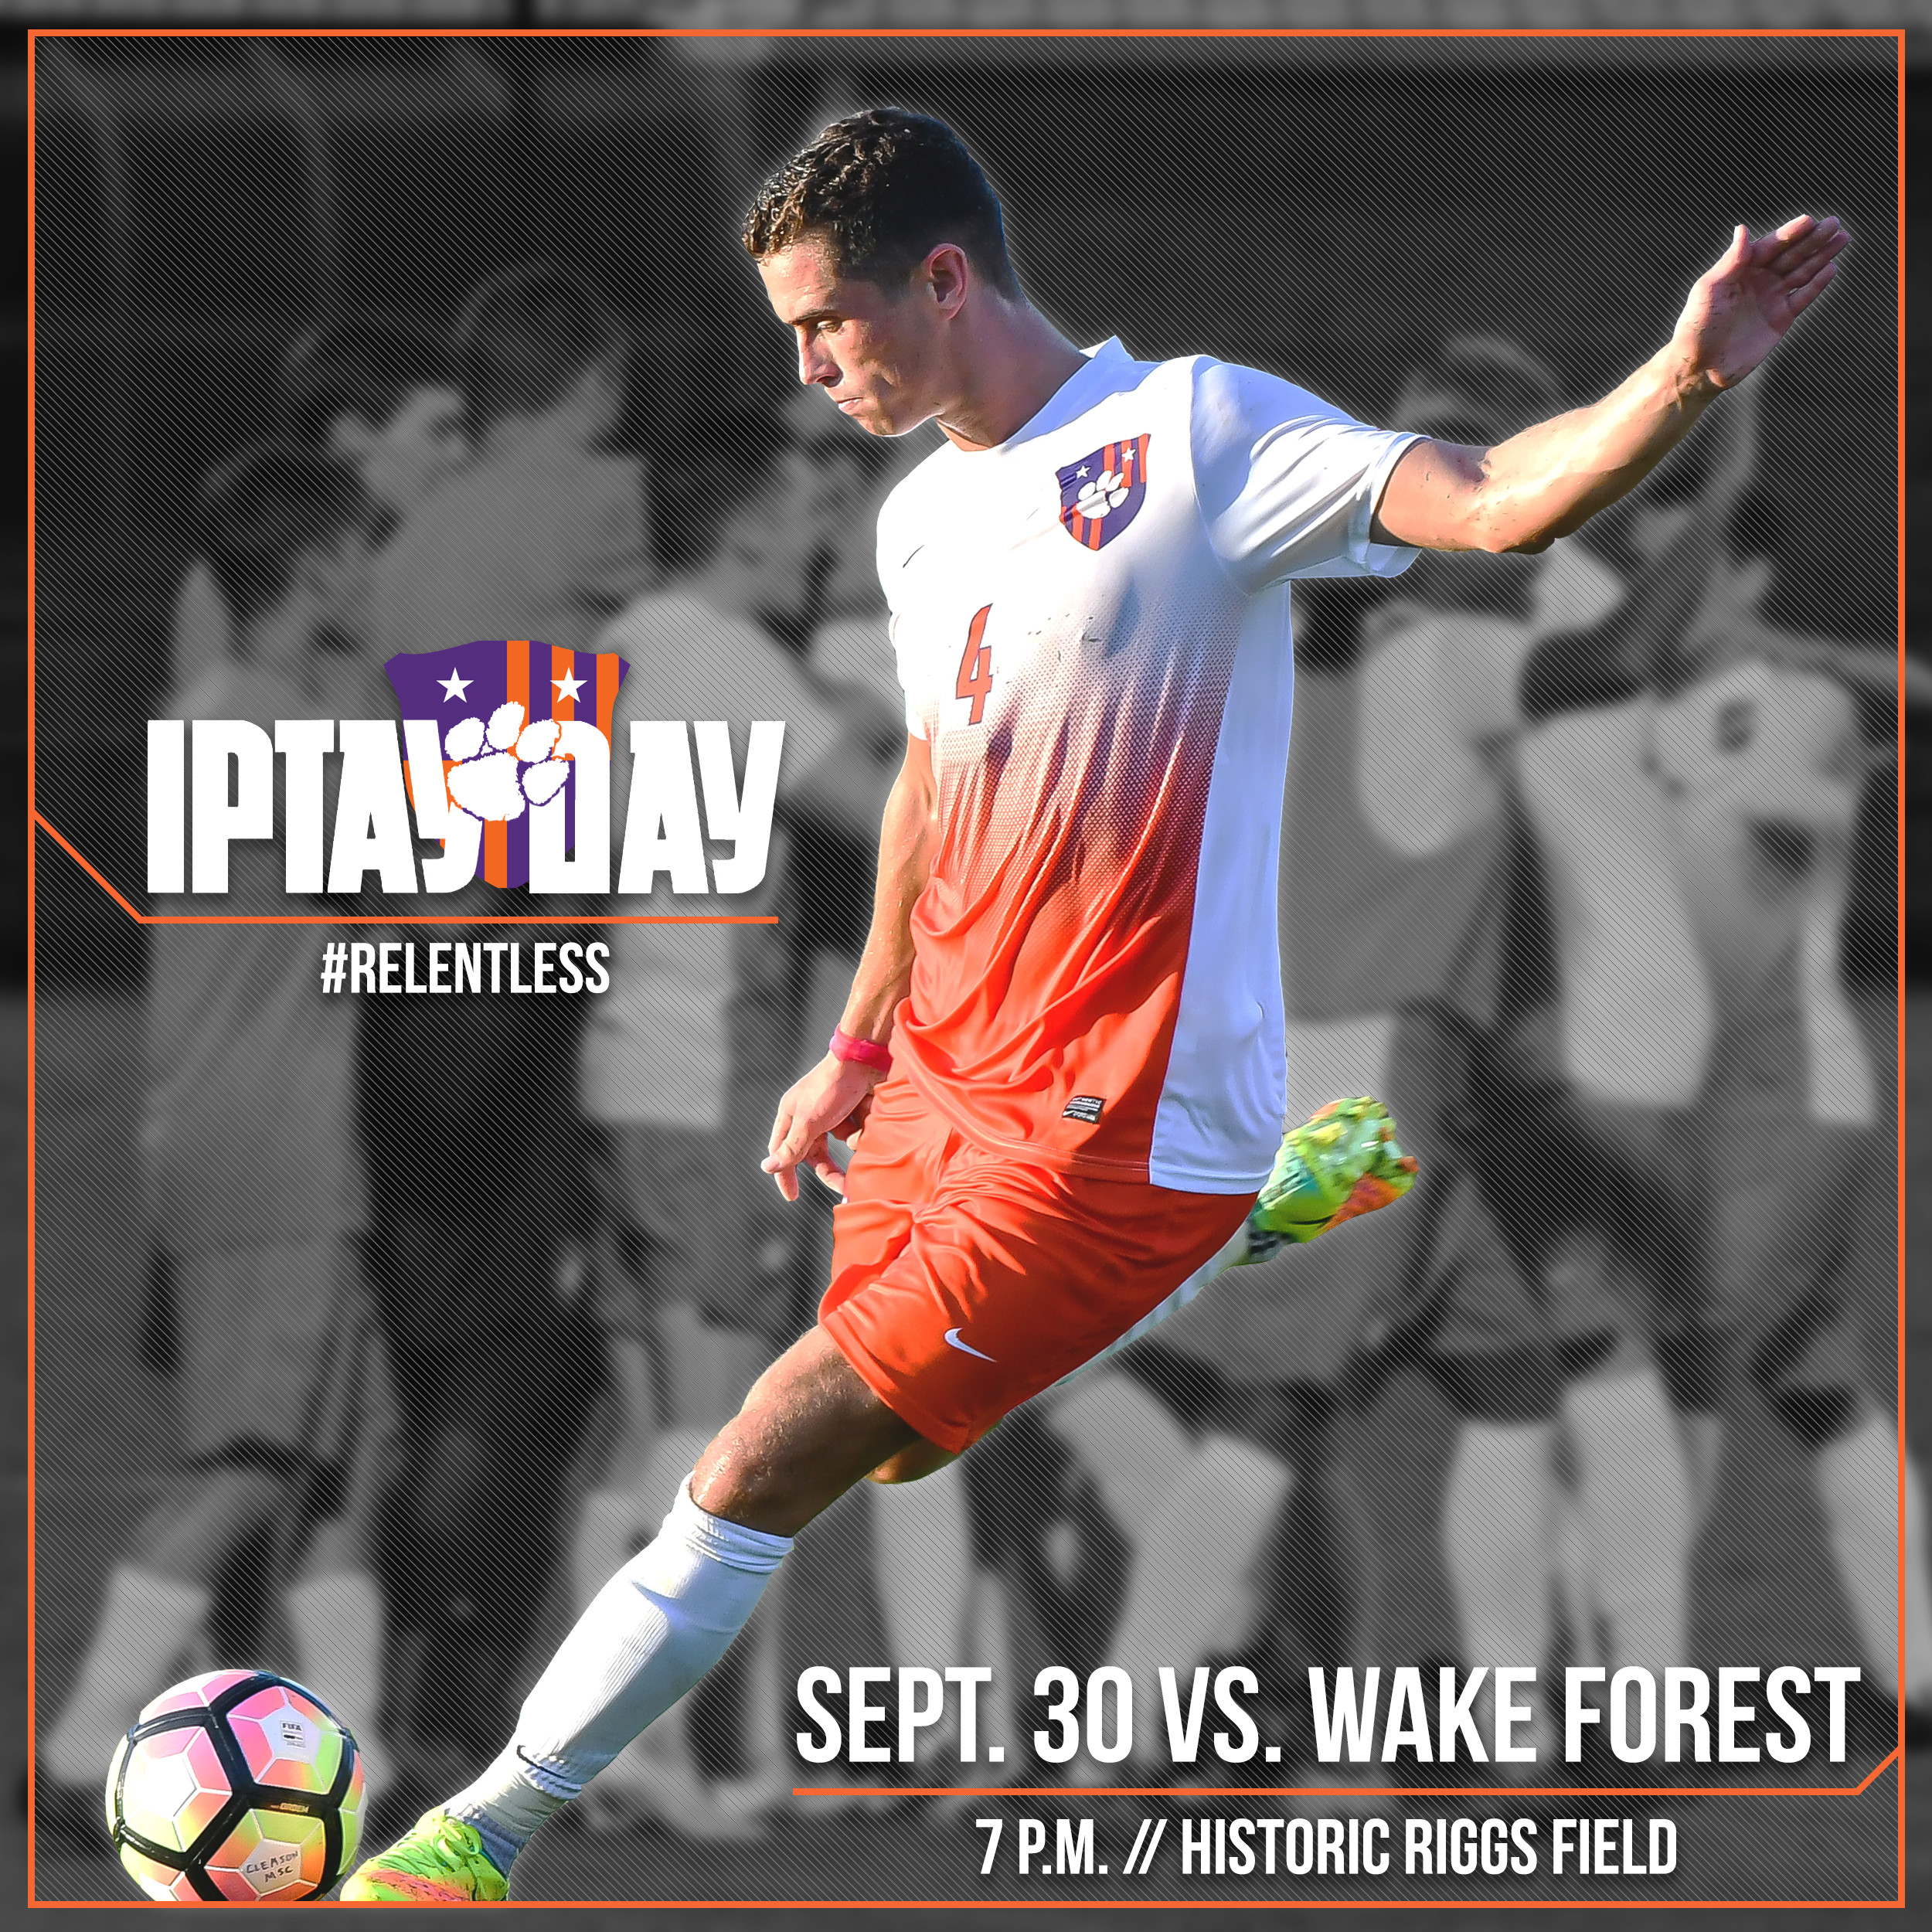 Join Us For IPTAY Day At Clemson Soccer